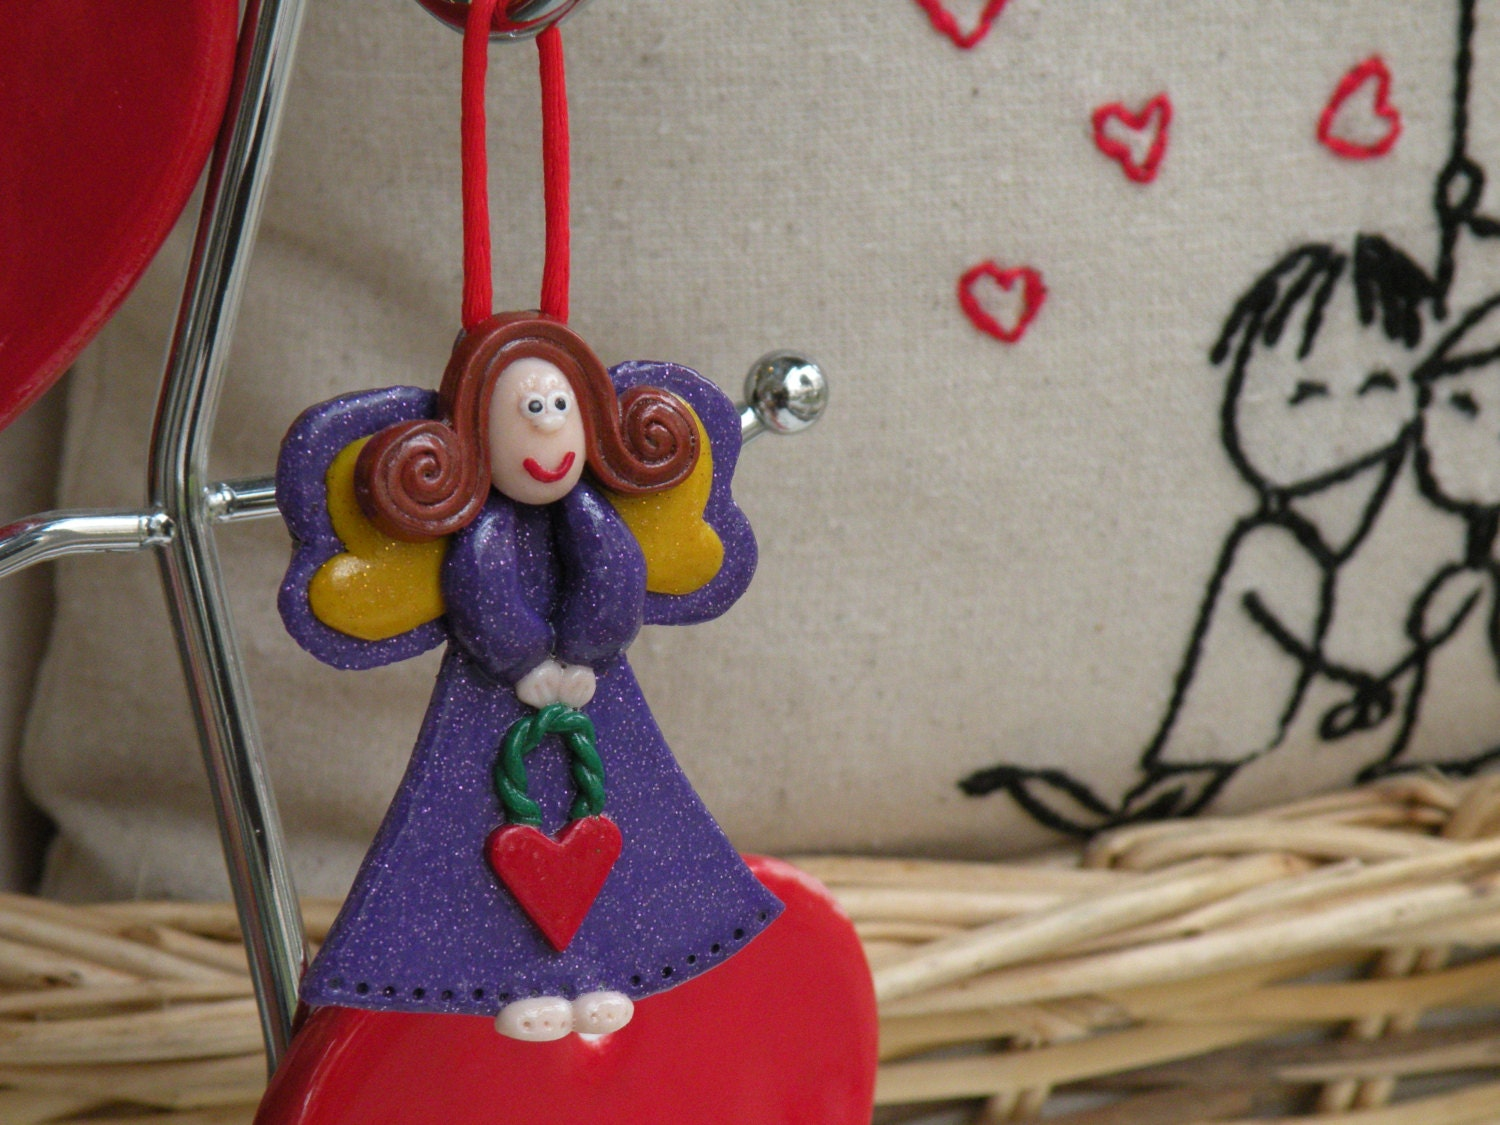 Angel of Love, Ornament Decor, Christmas Tree Ornament, Purple Angel with Red Heart, Baby Girl Decoration